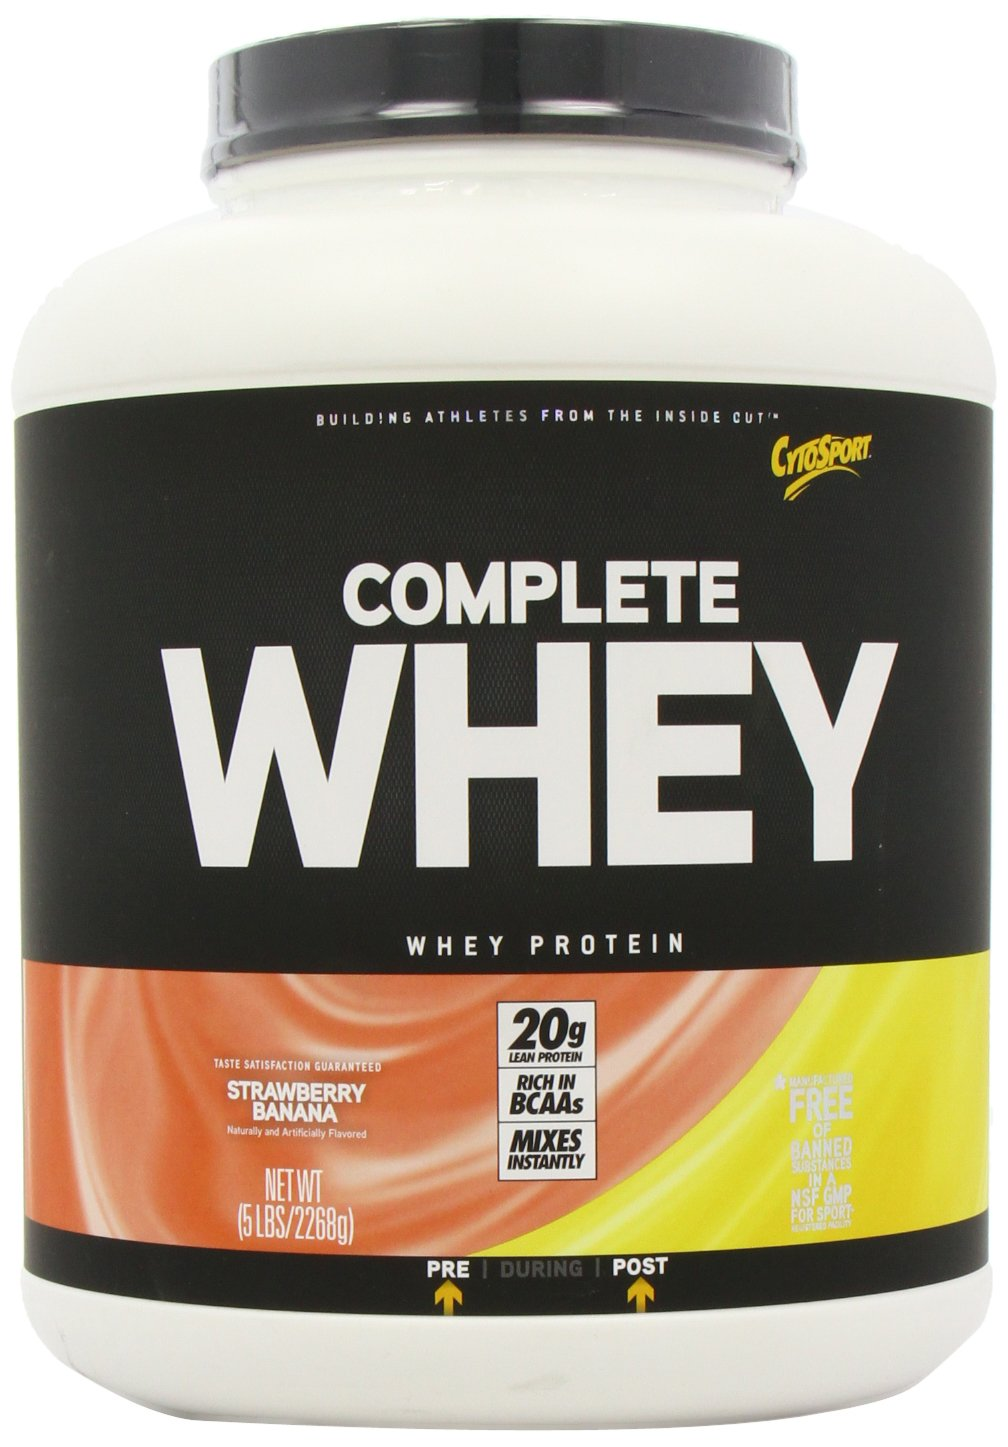 CytoSport Complete Whey Protein, Strawberry Banana, 5 Pound